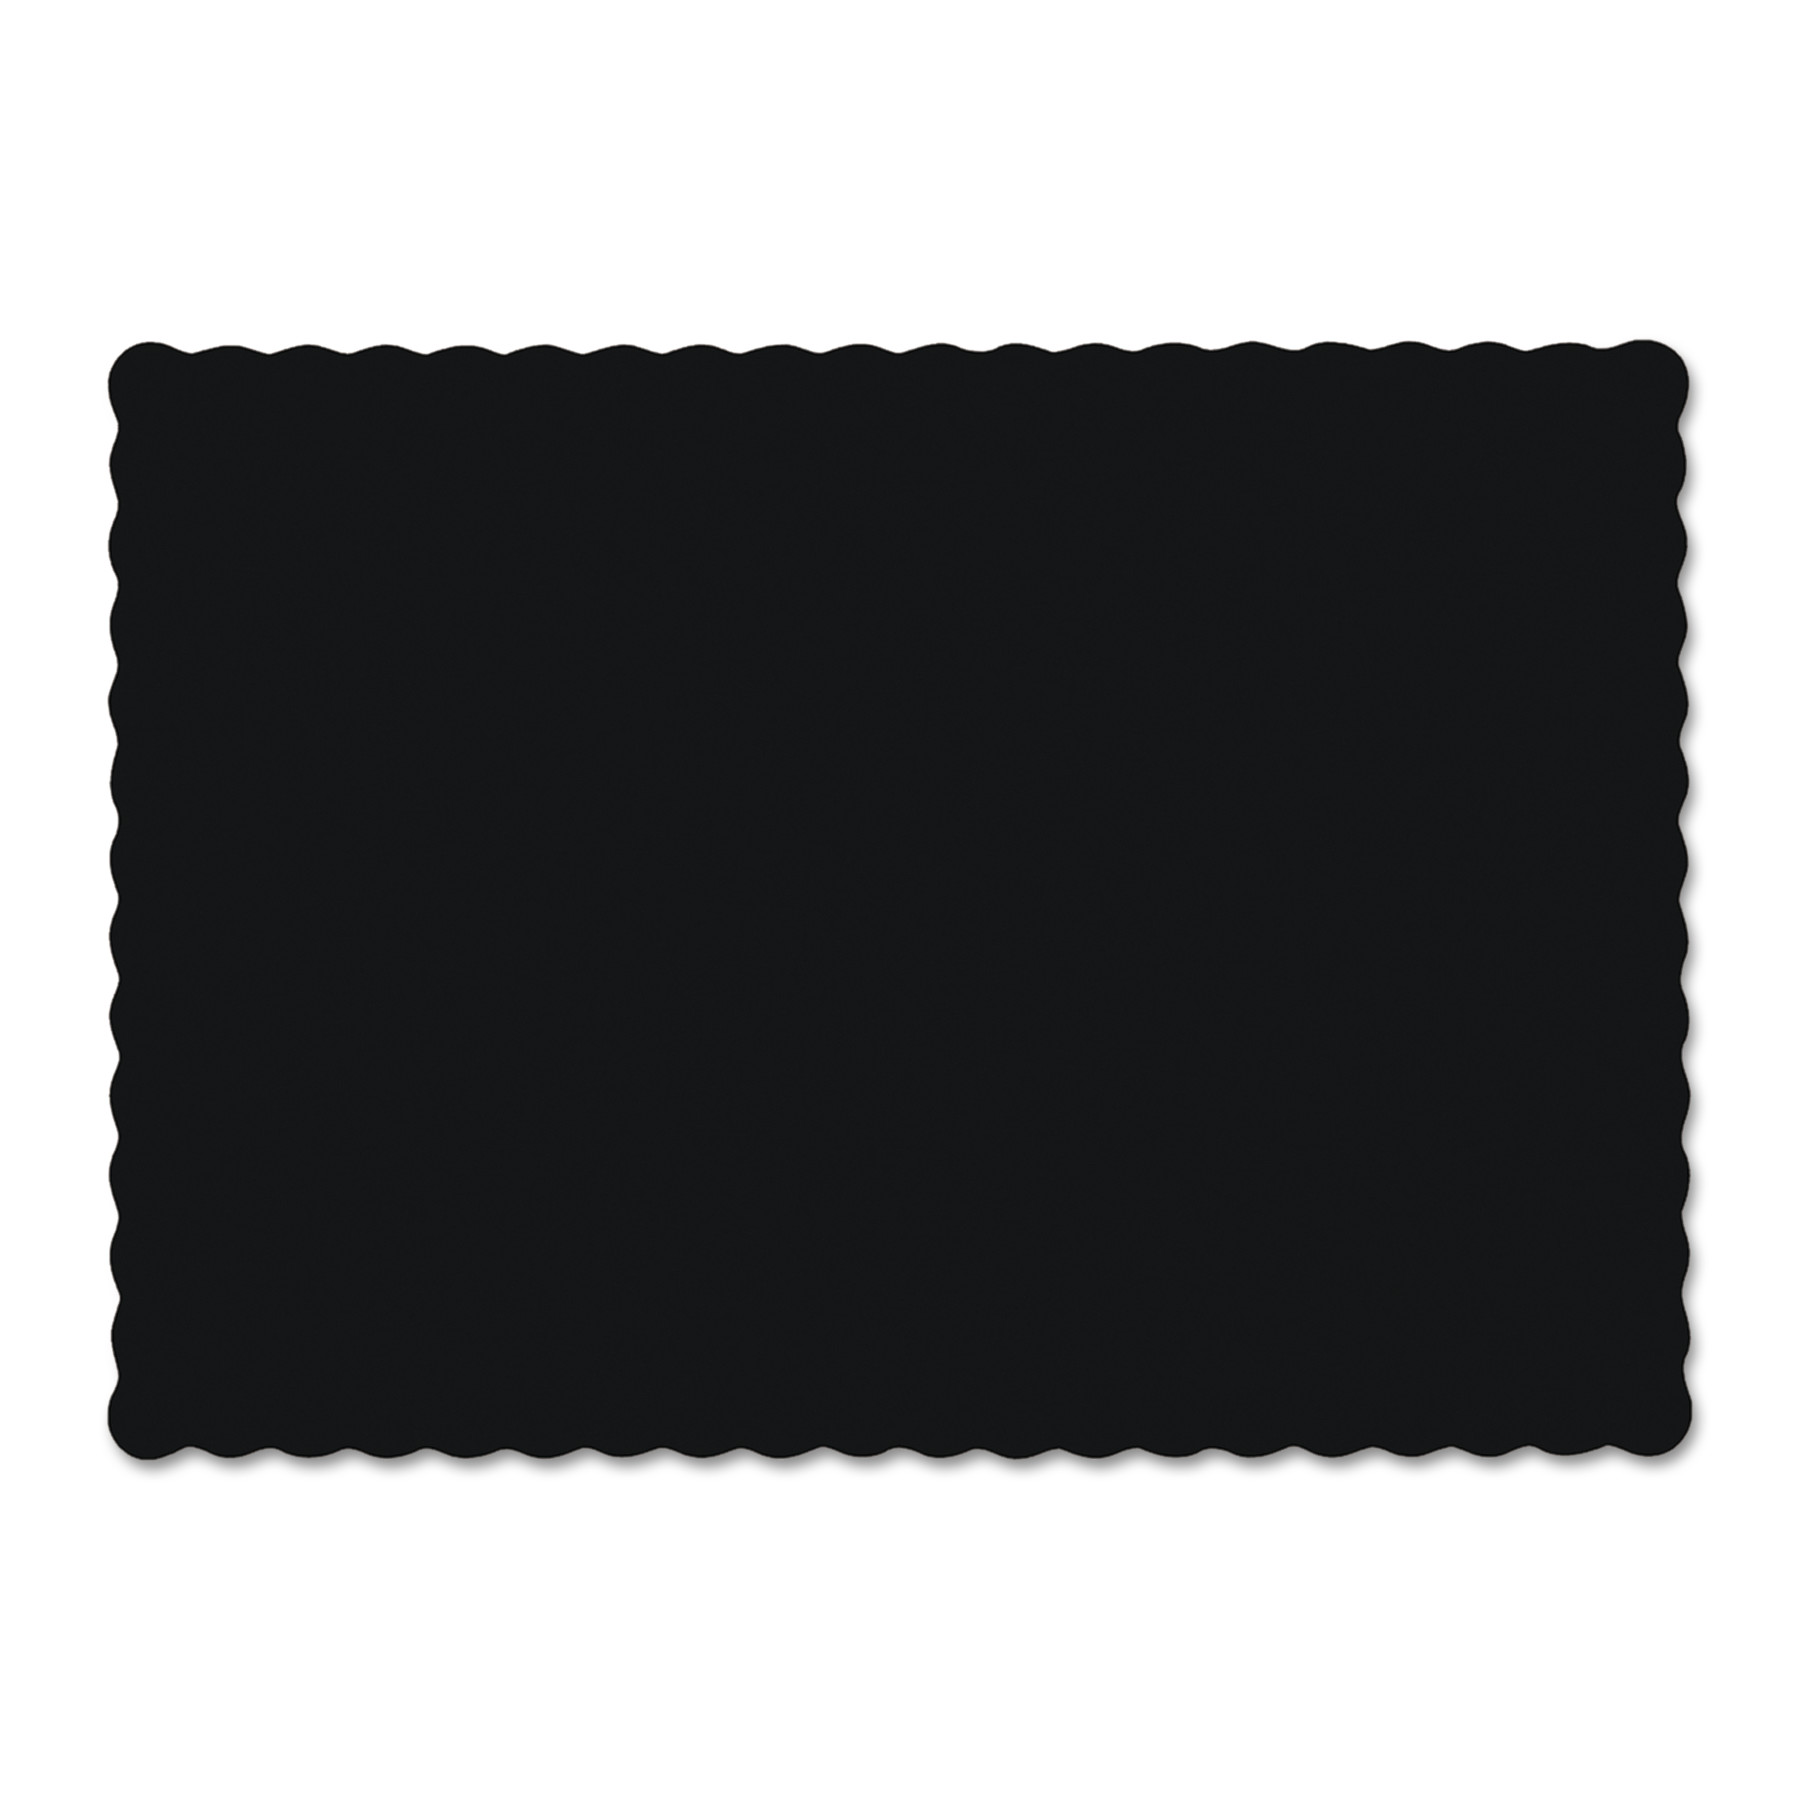 Hoffmaster Black Solid Color Scalloped Edge Placemats, 1000 count by Hoffmaster